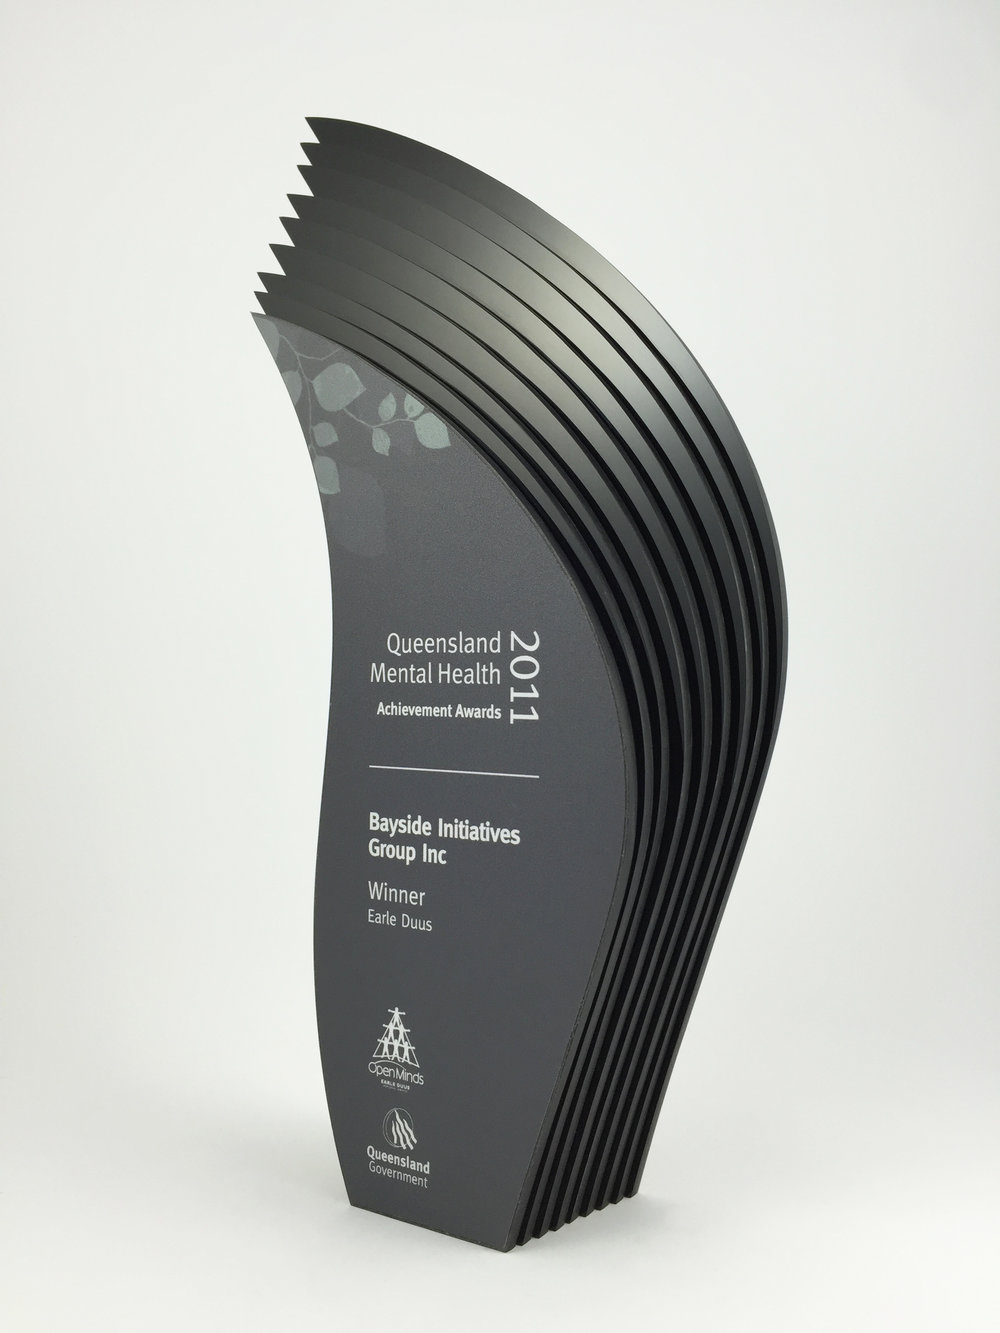 qld-mental-health-acrylic-trophy-awards-01.jpg